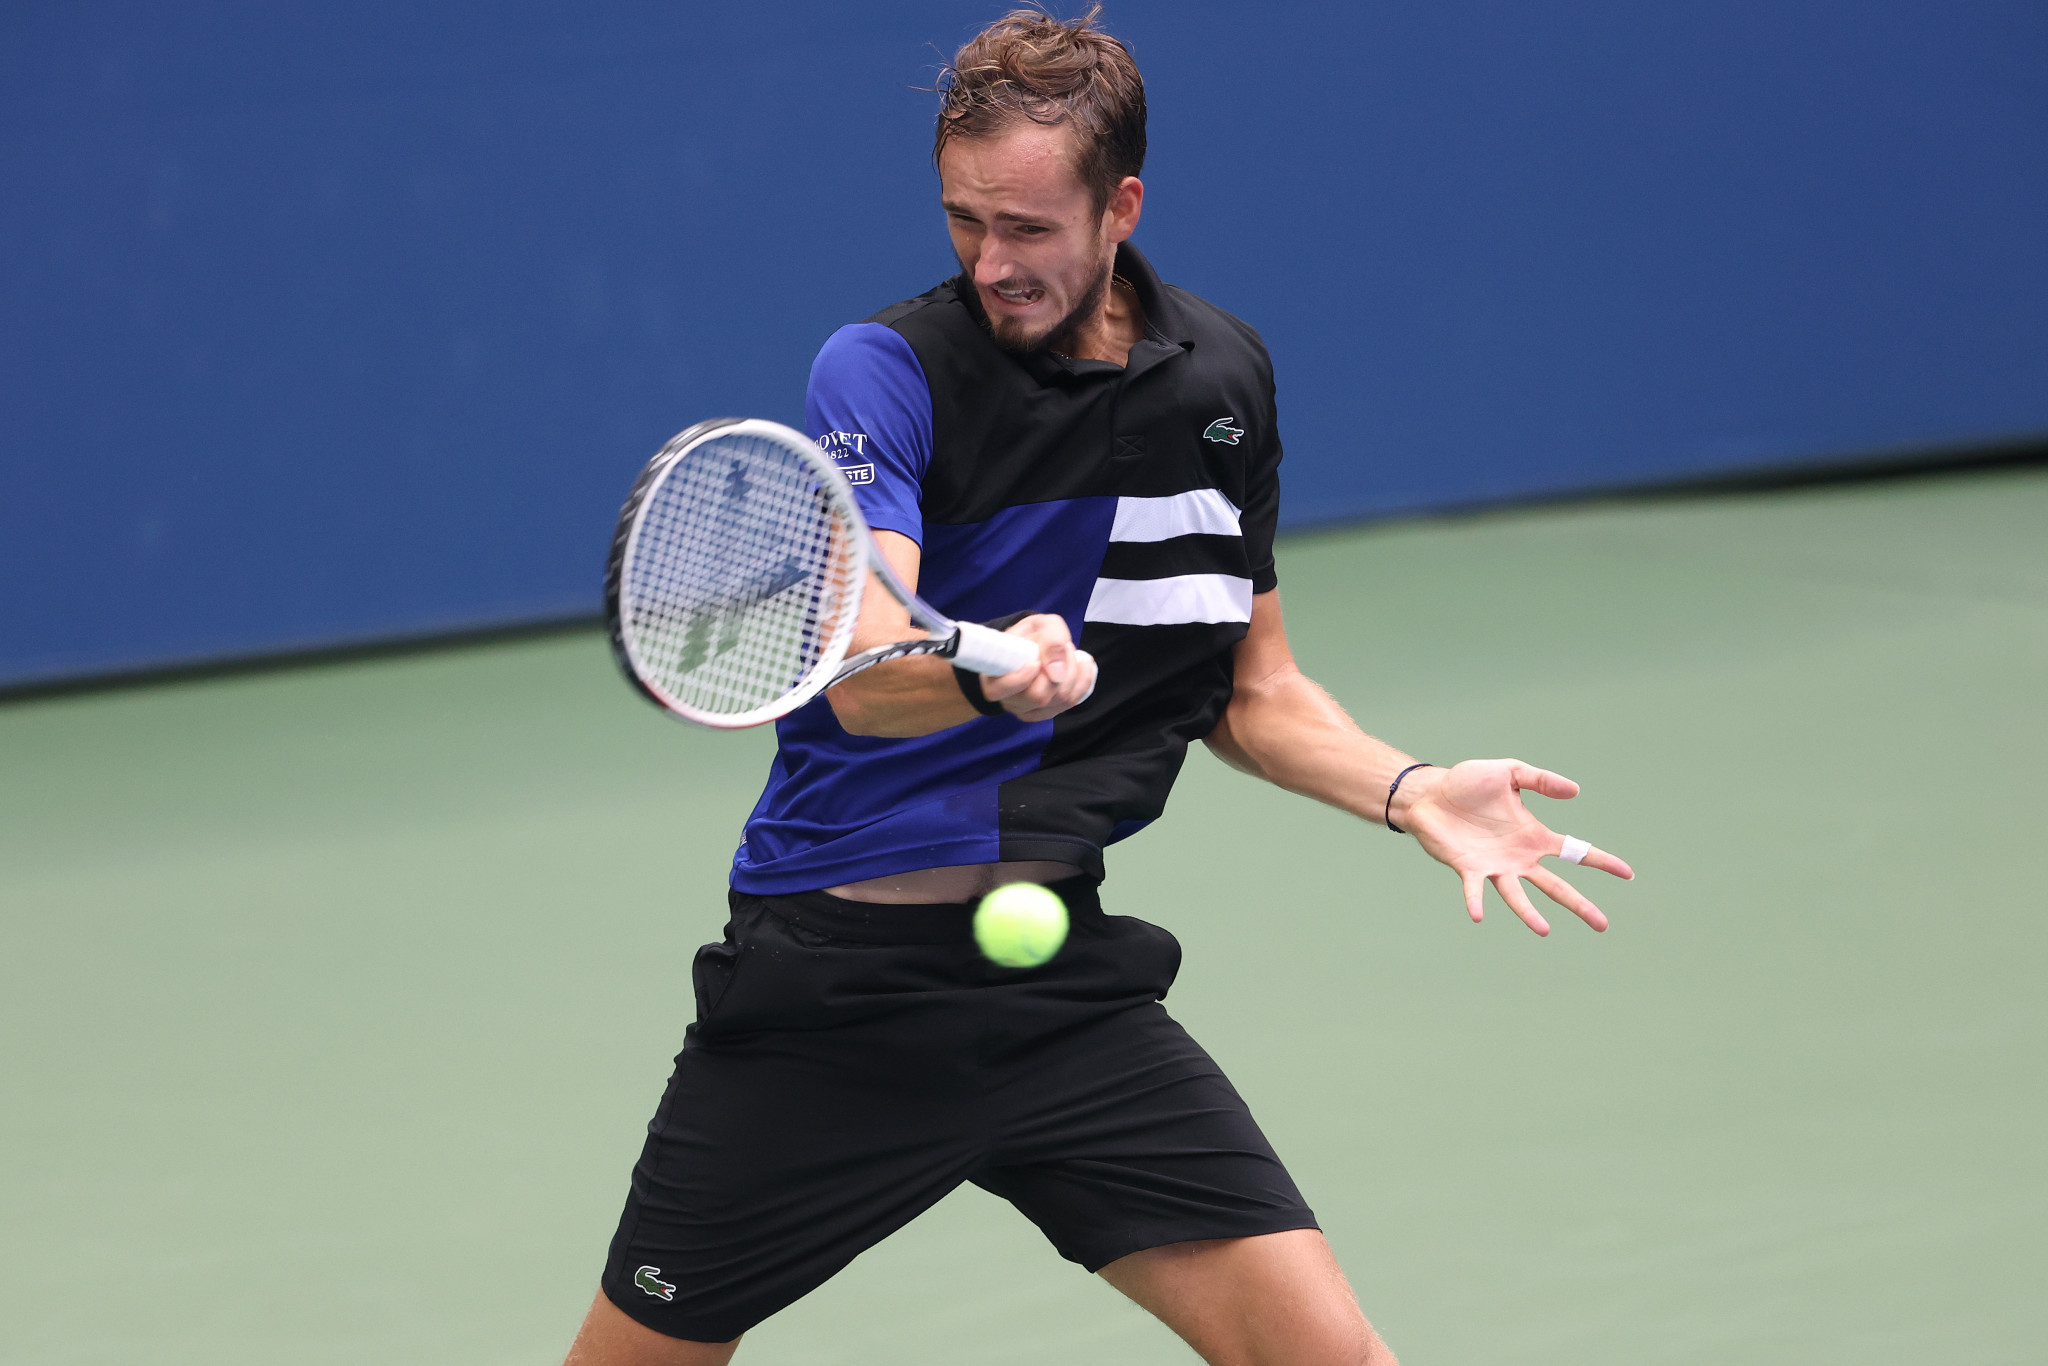 Last year's runner-up Daniil Medvedev reached the US Open semi-finals with a straight sets win over fellow Russian Andrey Rublev ©Getty Images